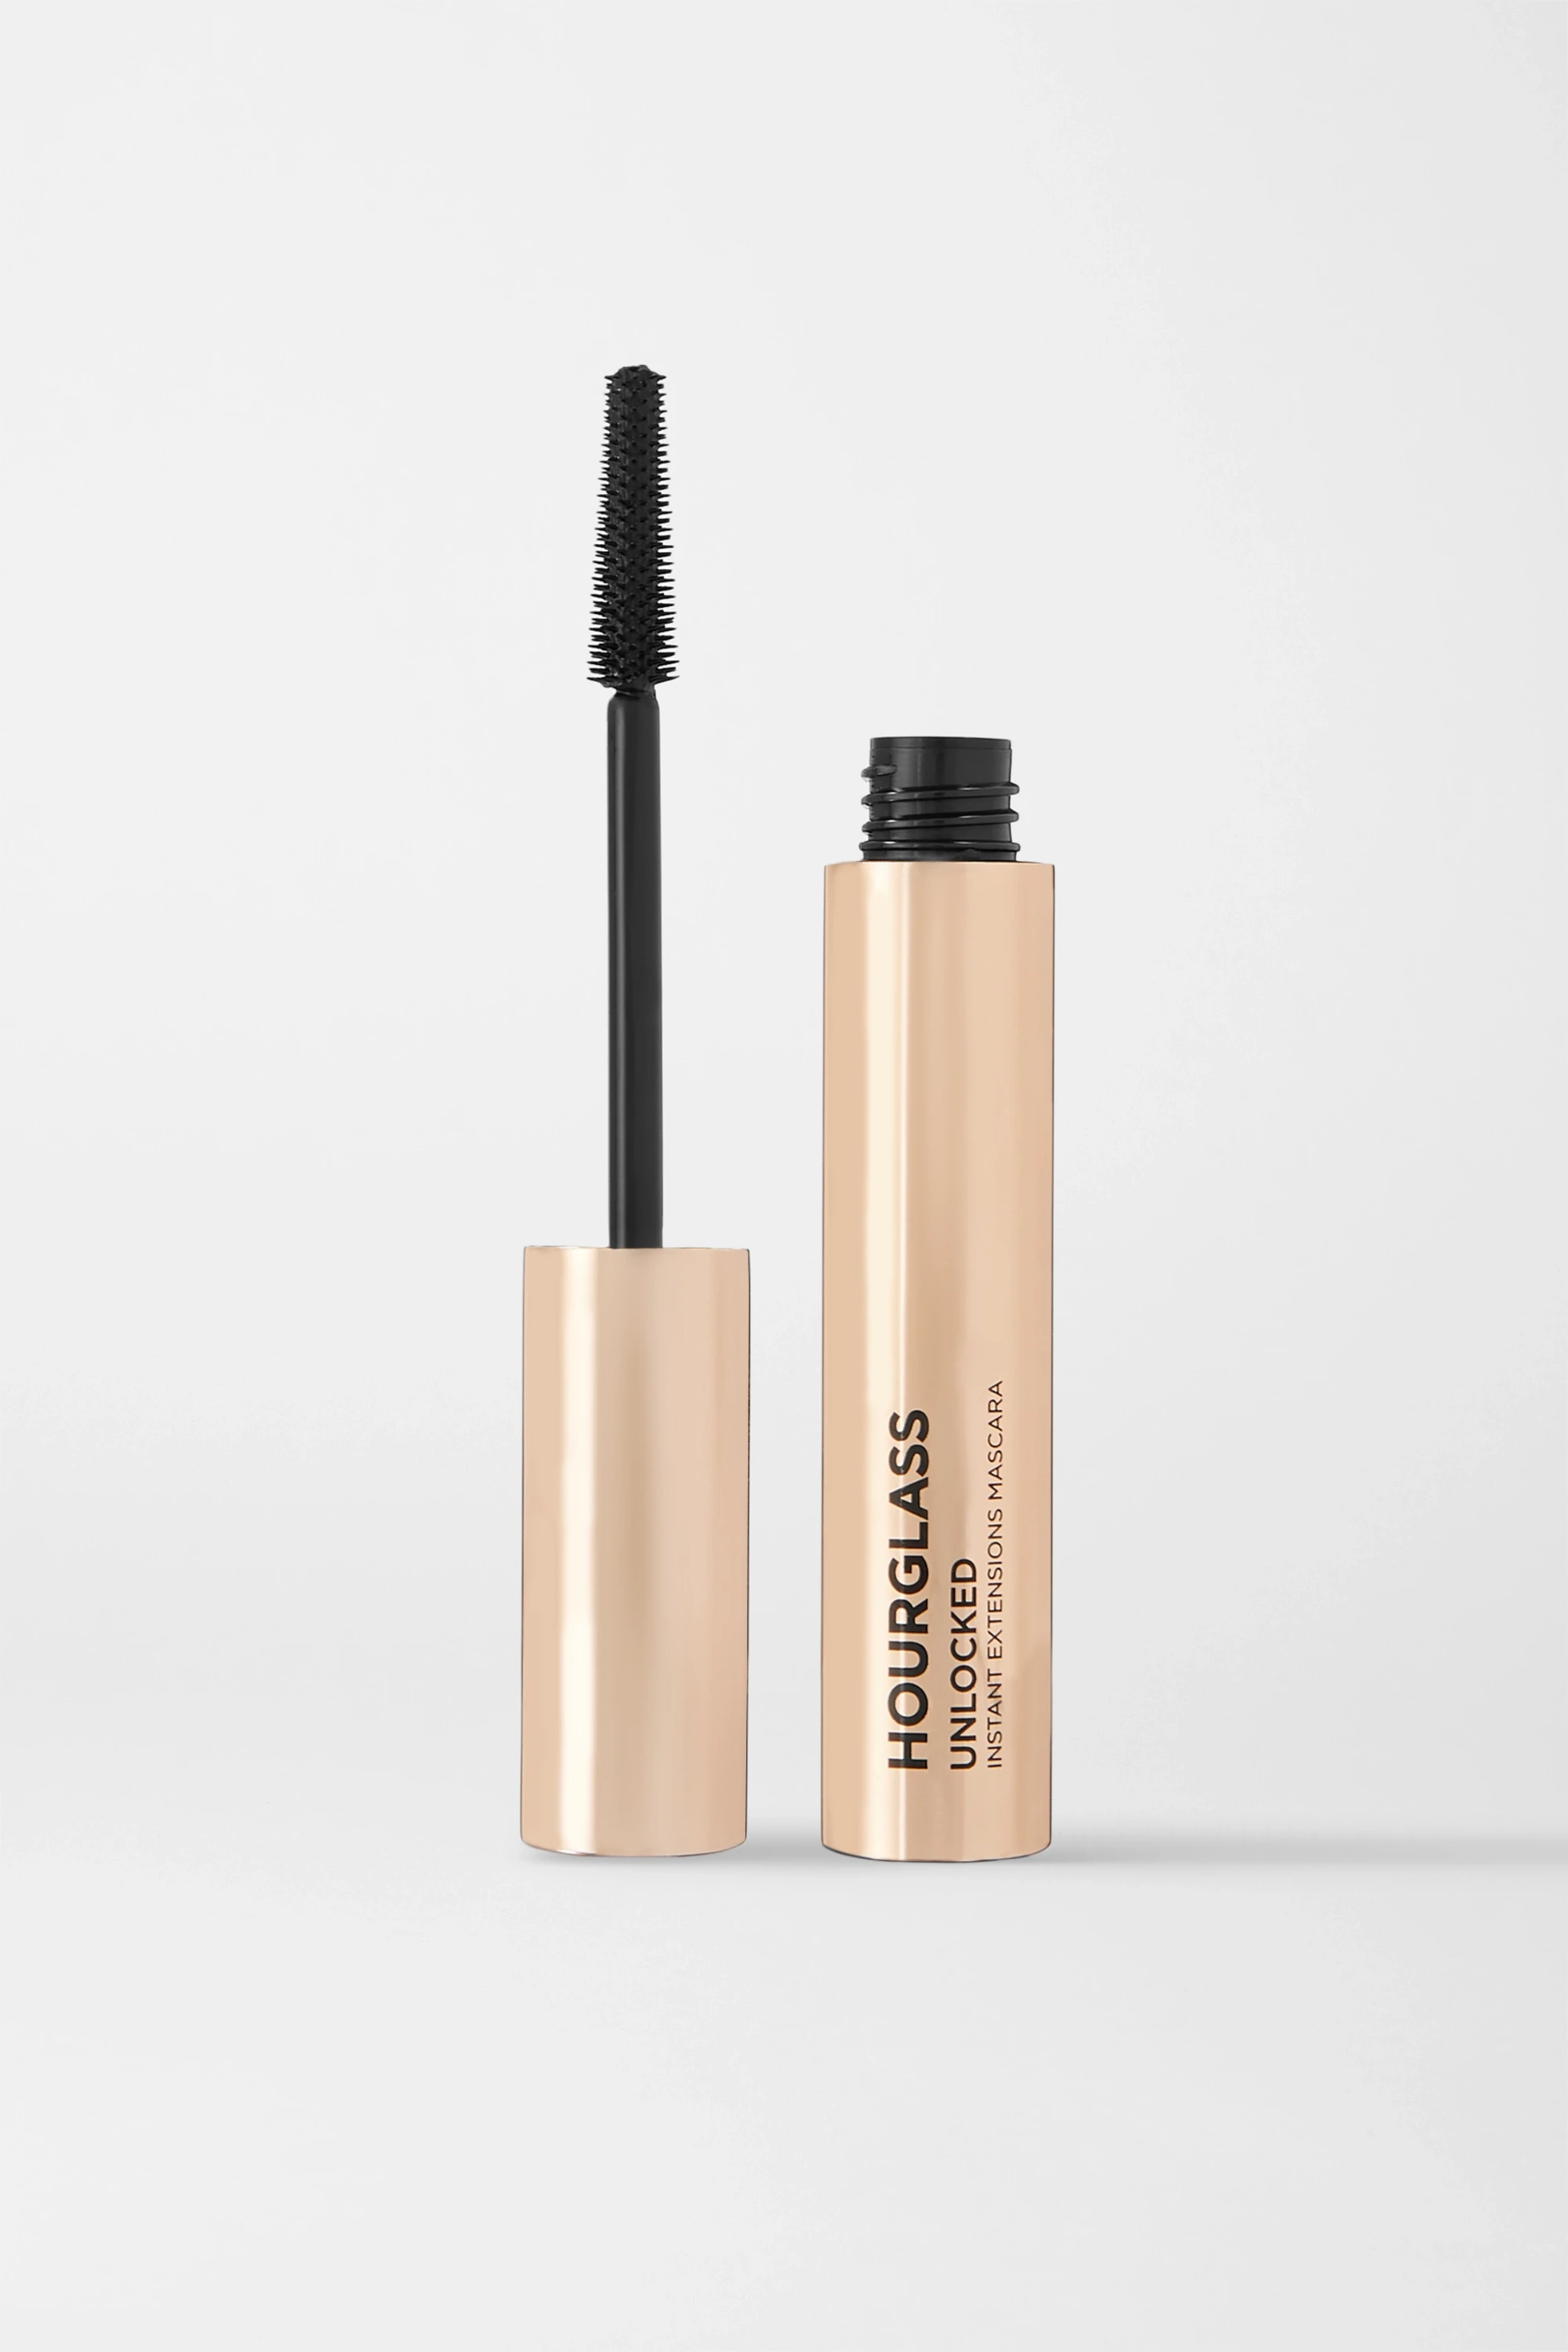 Hourglass Unlocked Instant Extensions Mascara - Ultra Black